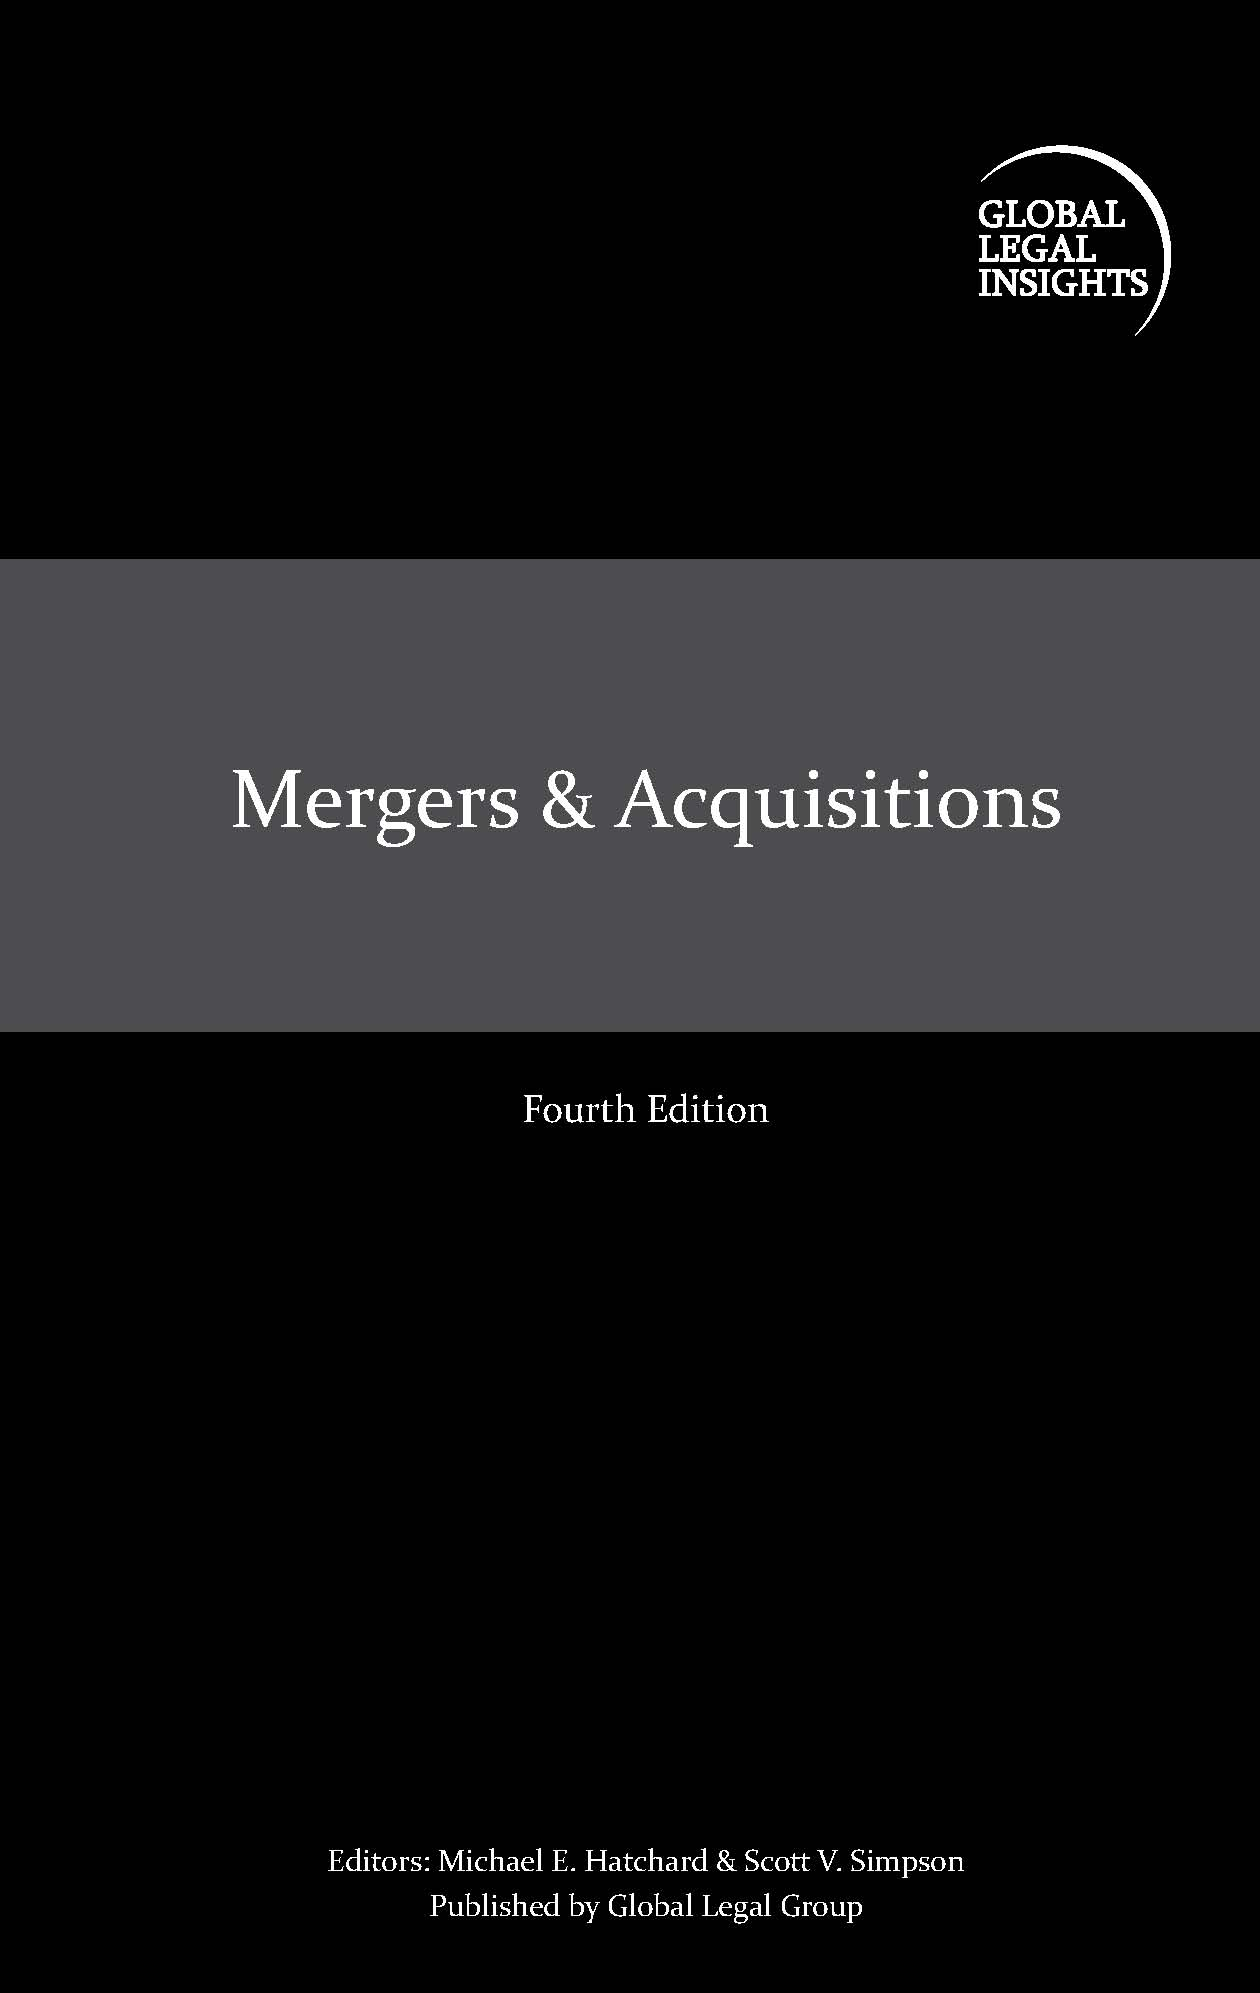 mergers-acquisitions-global-legal-insights